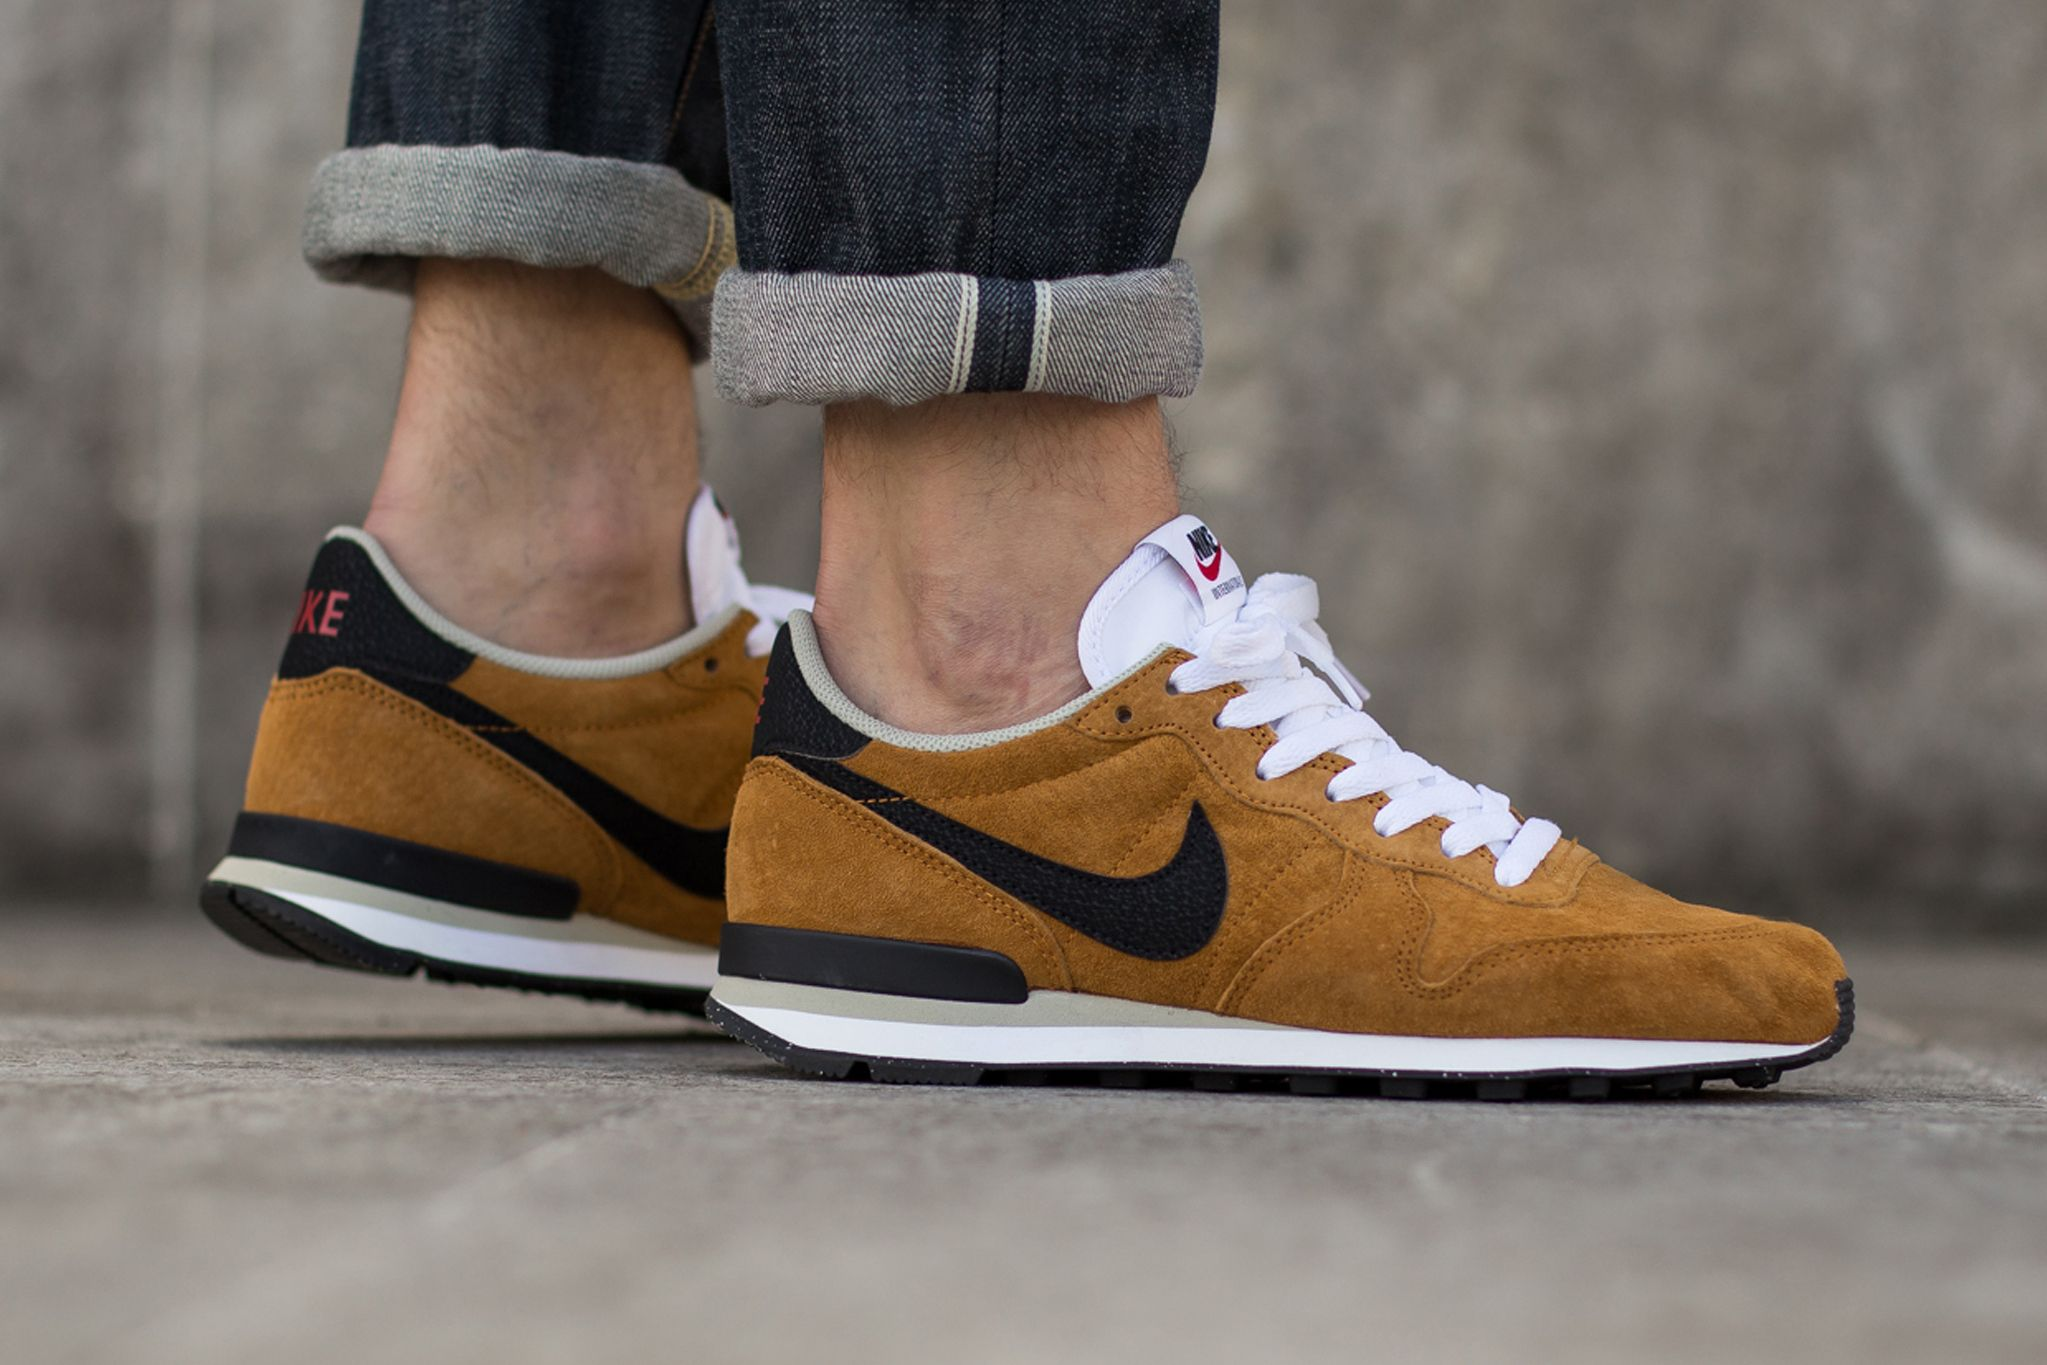 Nike Internationalist Leather | Chaussure, Chaussures homme, Mode